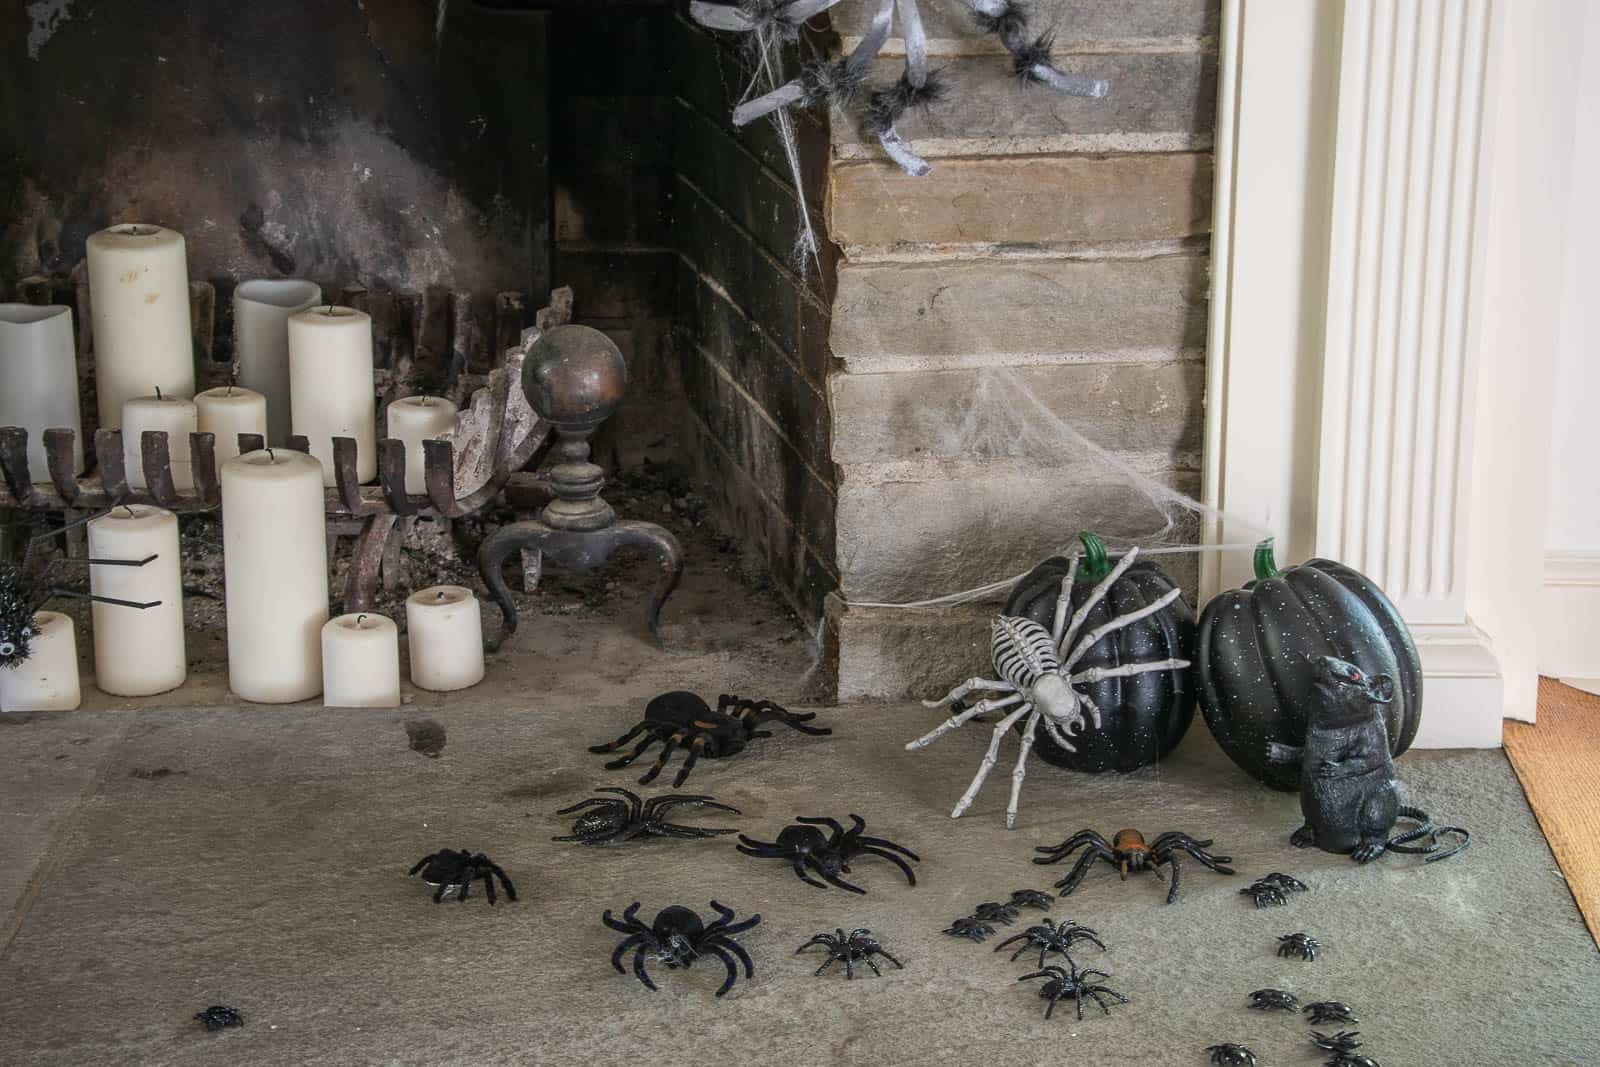 spiders skittering out of fireplace